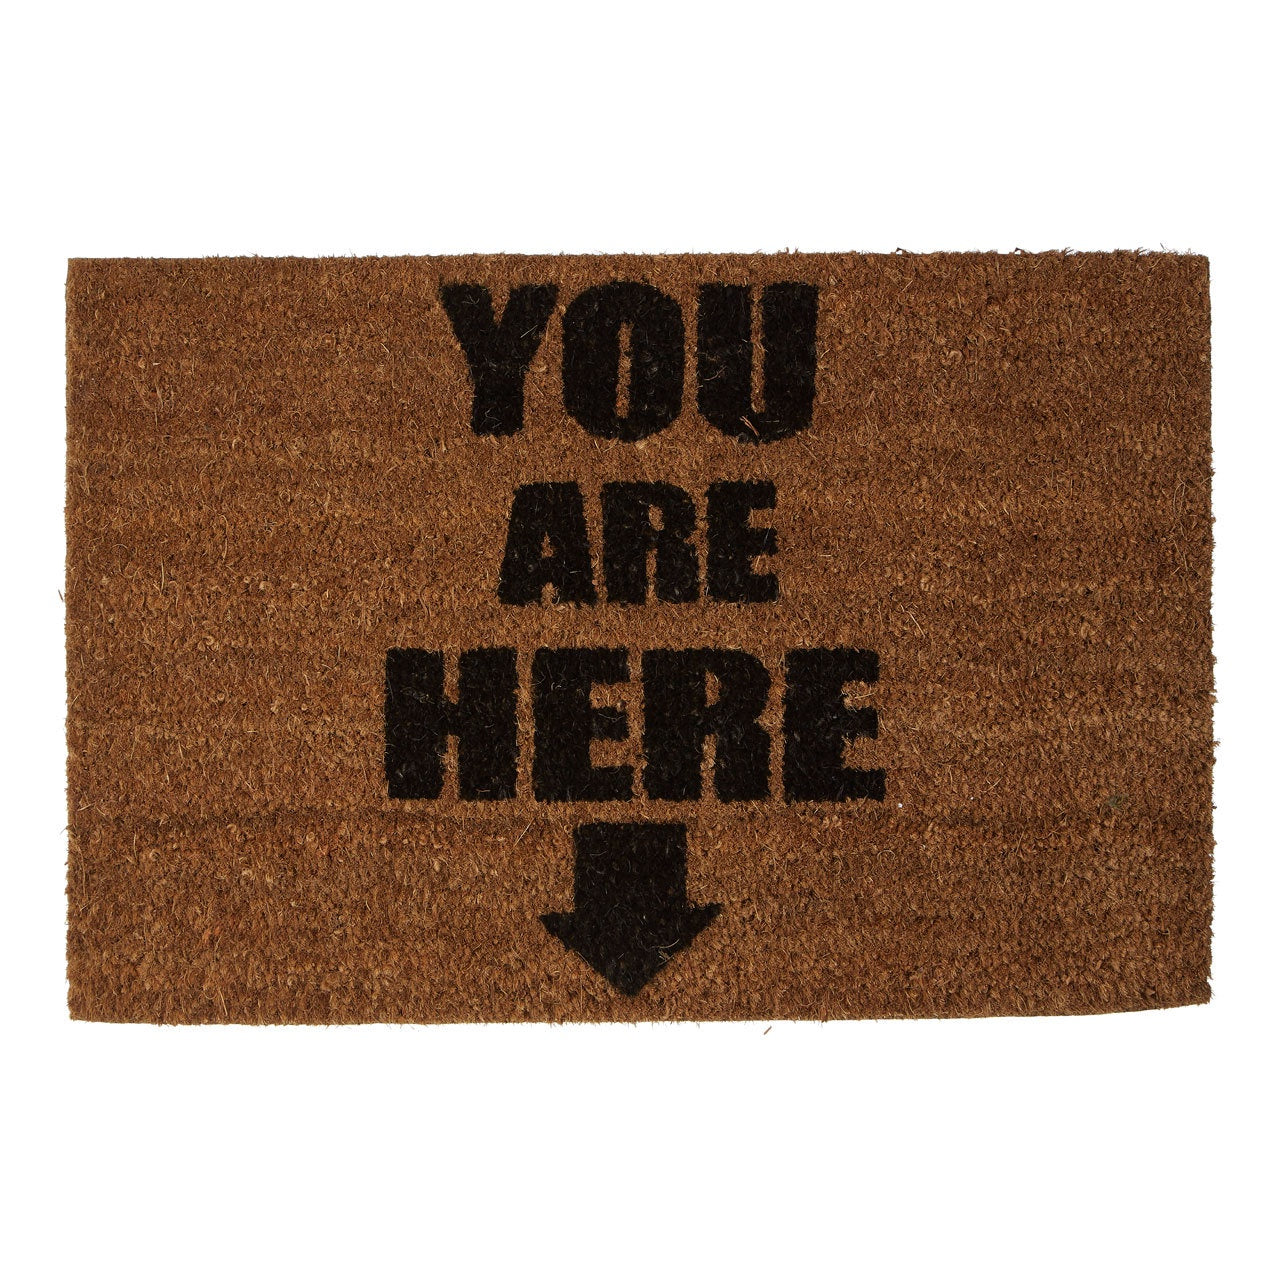 PREMIER YOU ARE HERE DOORMAT 60CM X 40CM - 1901655